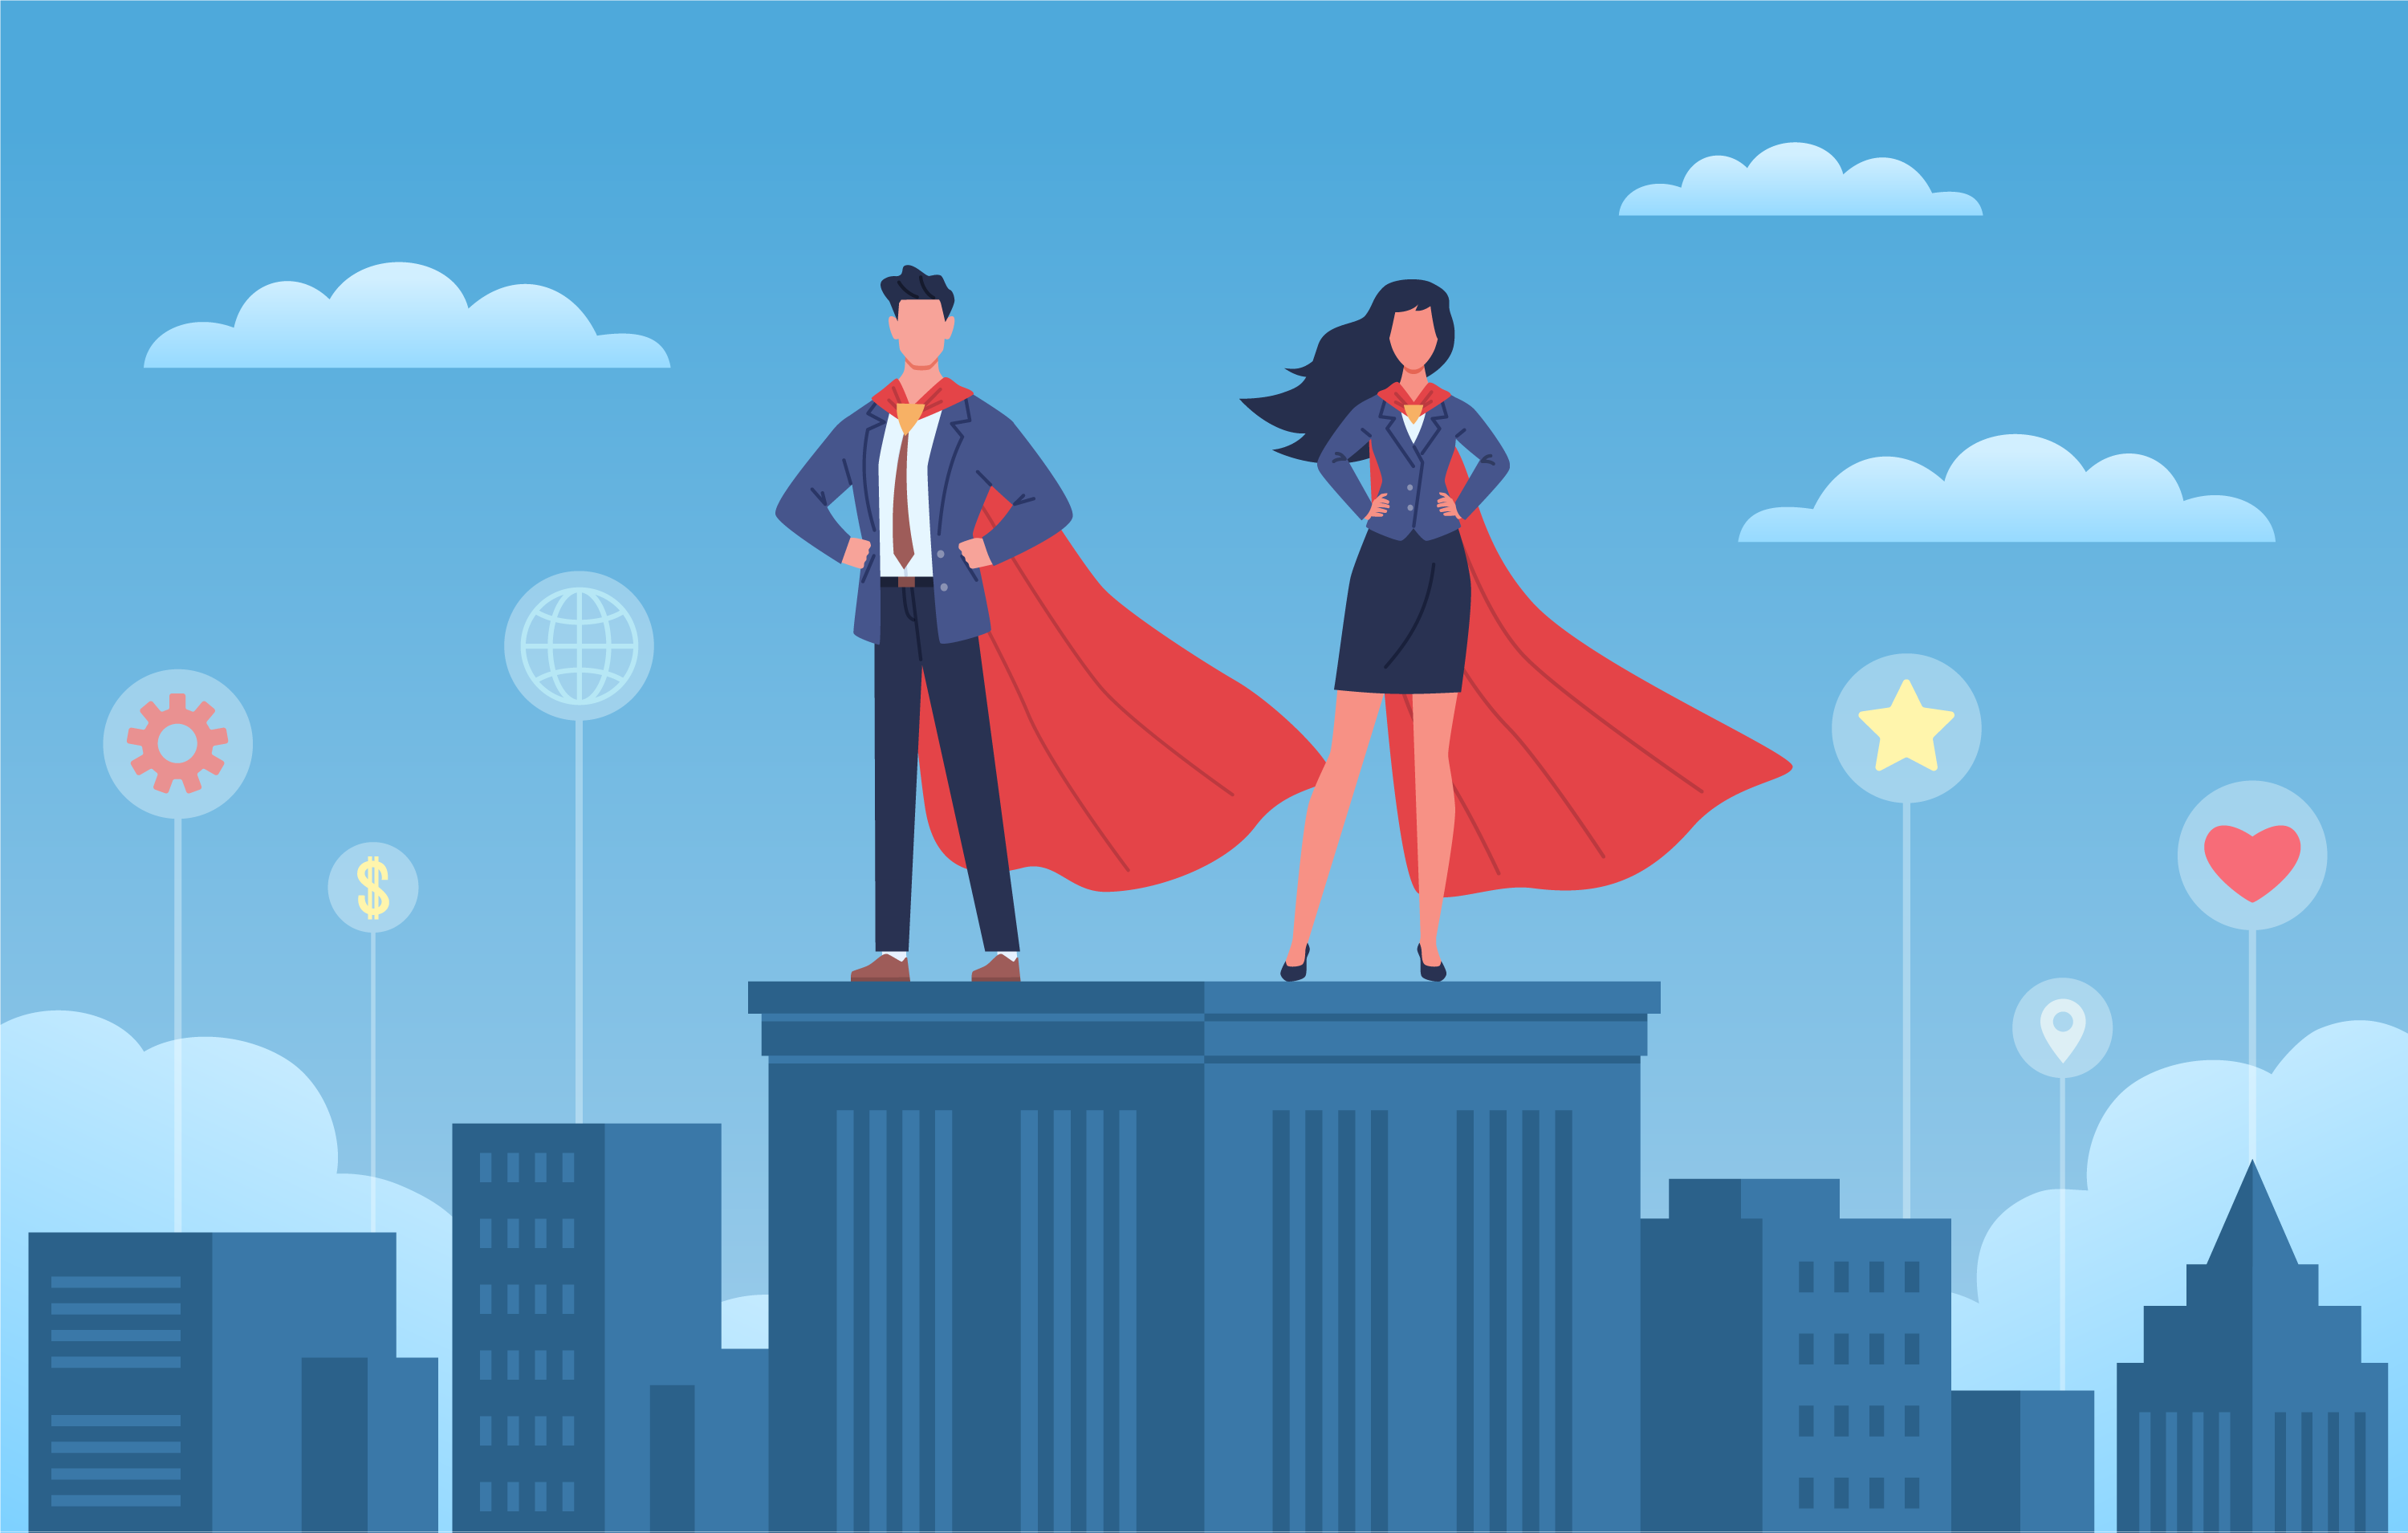 Real Estate Developers, Accountants and Financial Leaders: Identify Your Superpower to Become an Unstoppable Project Delivery Team